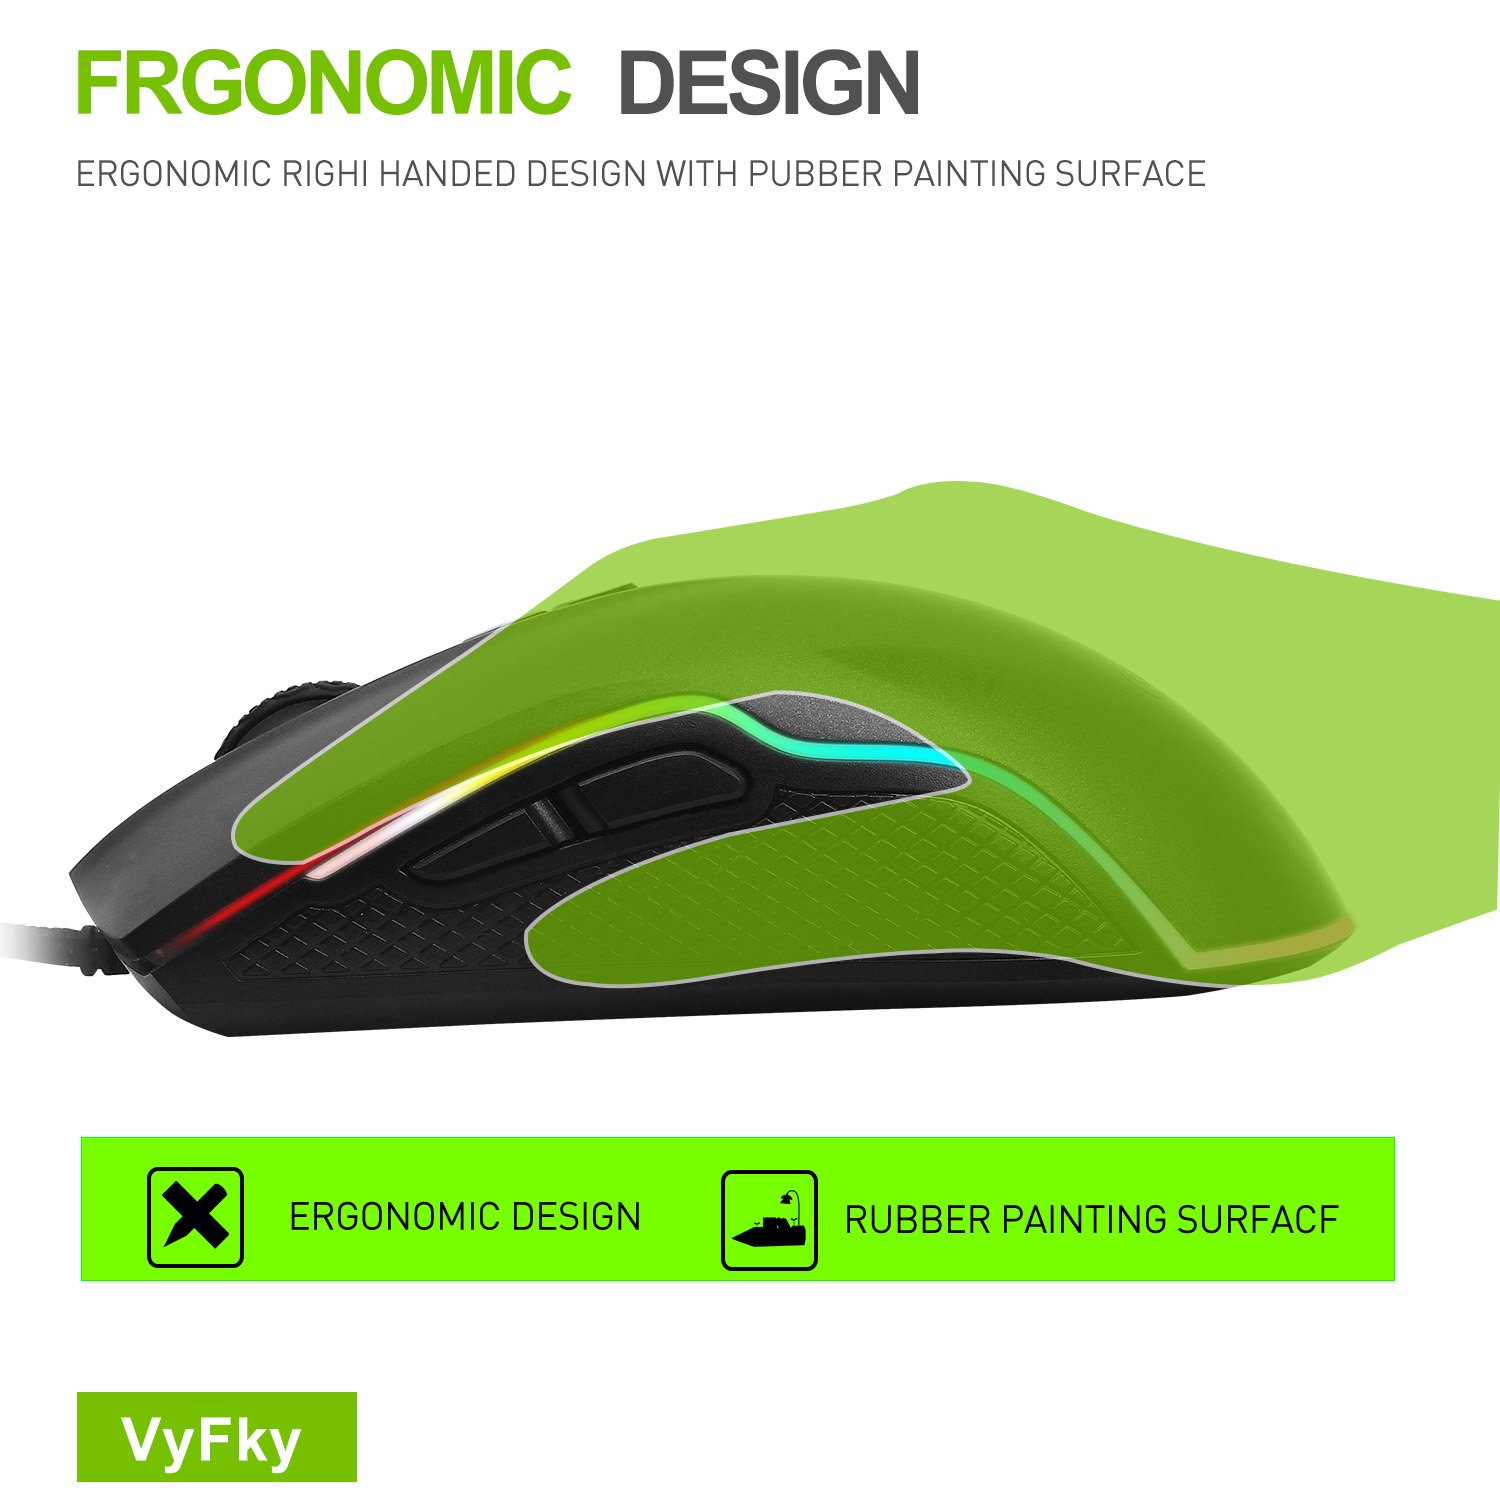 Amazon VyFky Wired Gaming Mouse 5000 DPI Programmable High Precision Optical USB Gaming Mouse for PC Laptop Desktop Windows System 16 8 Million